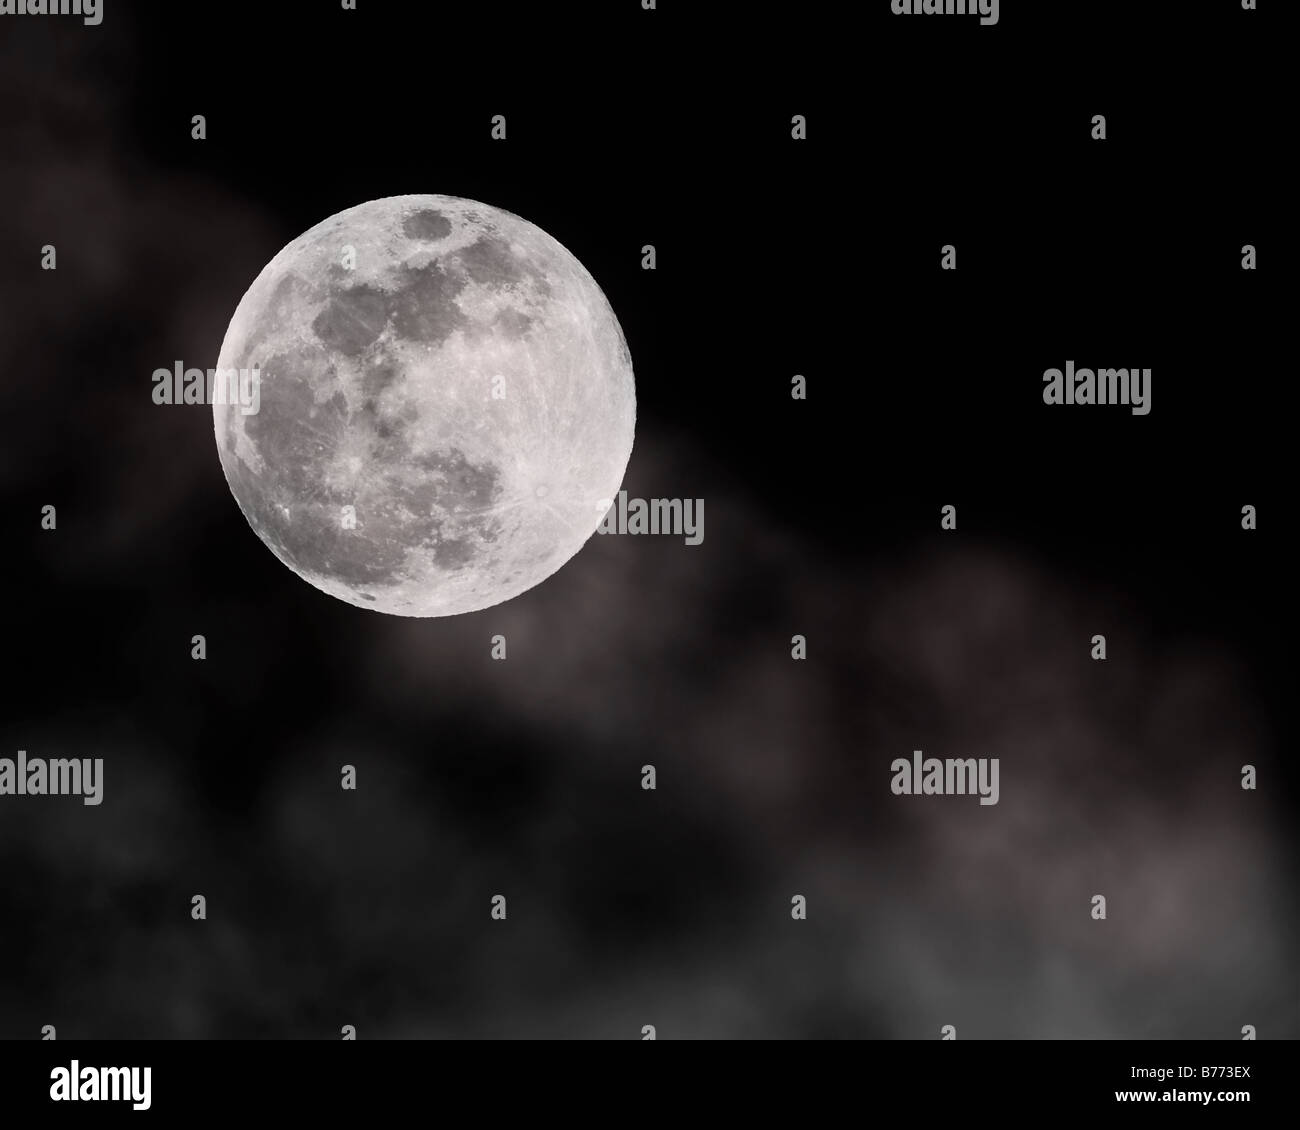 Full Wolf Moon on January 10 2009. Stock Photography by cahyman. - Stock Image